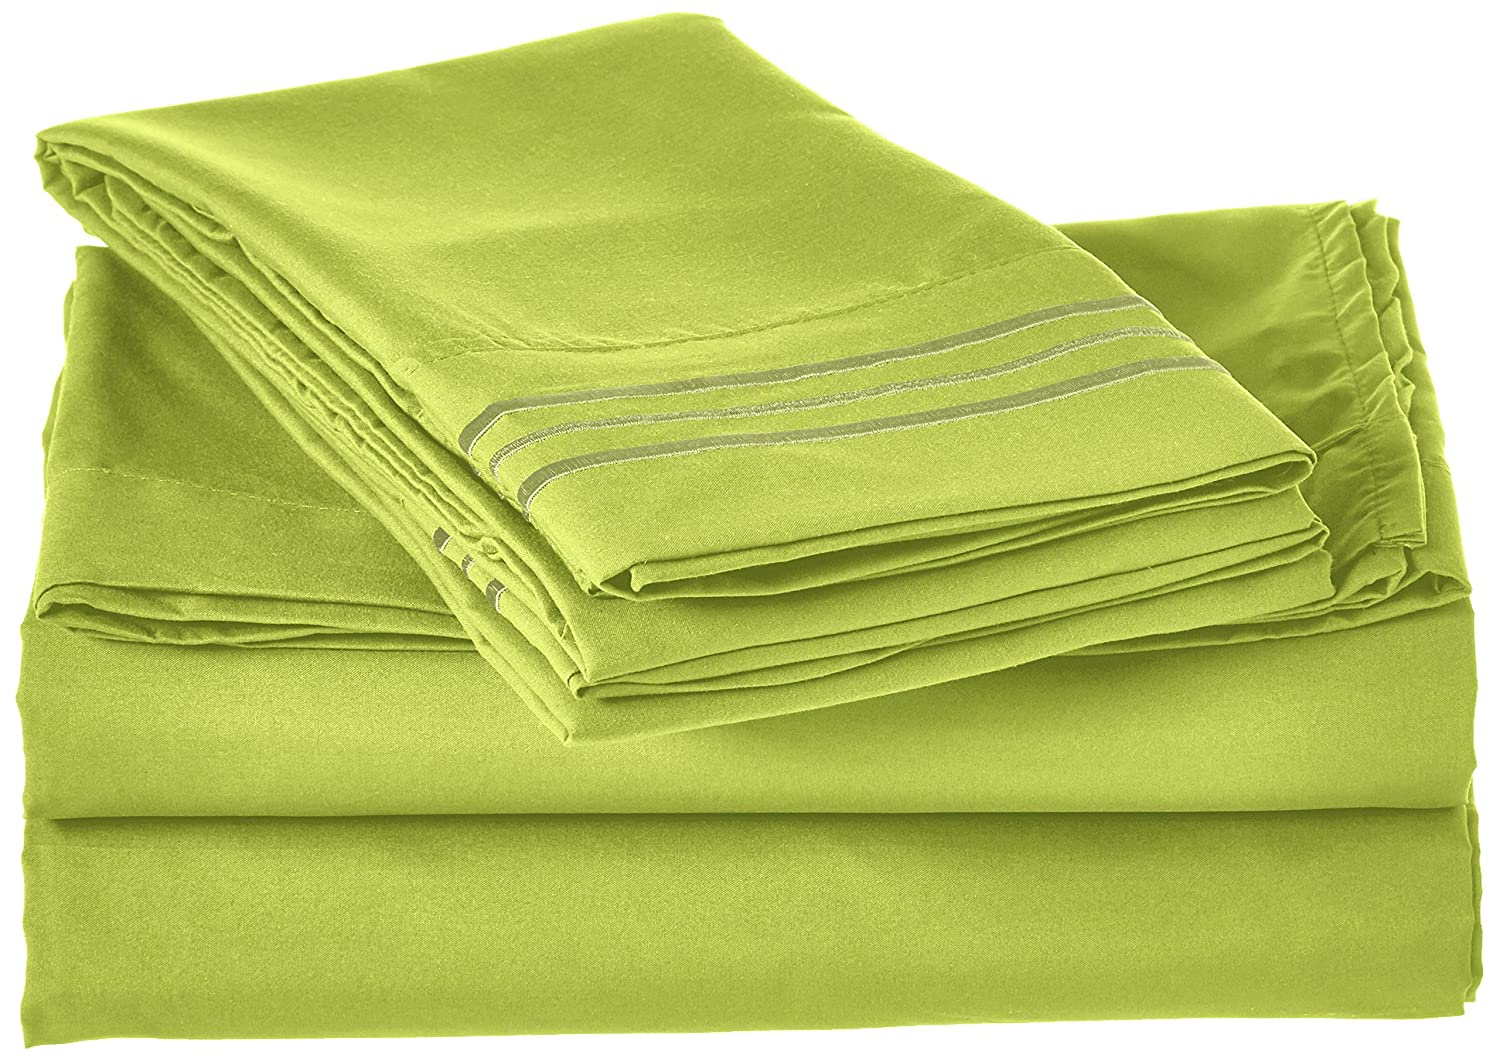 Egyptian Quality Super Soft Wrinkle Free 4-Piece Sheet Set, Queen, Lime-Green